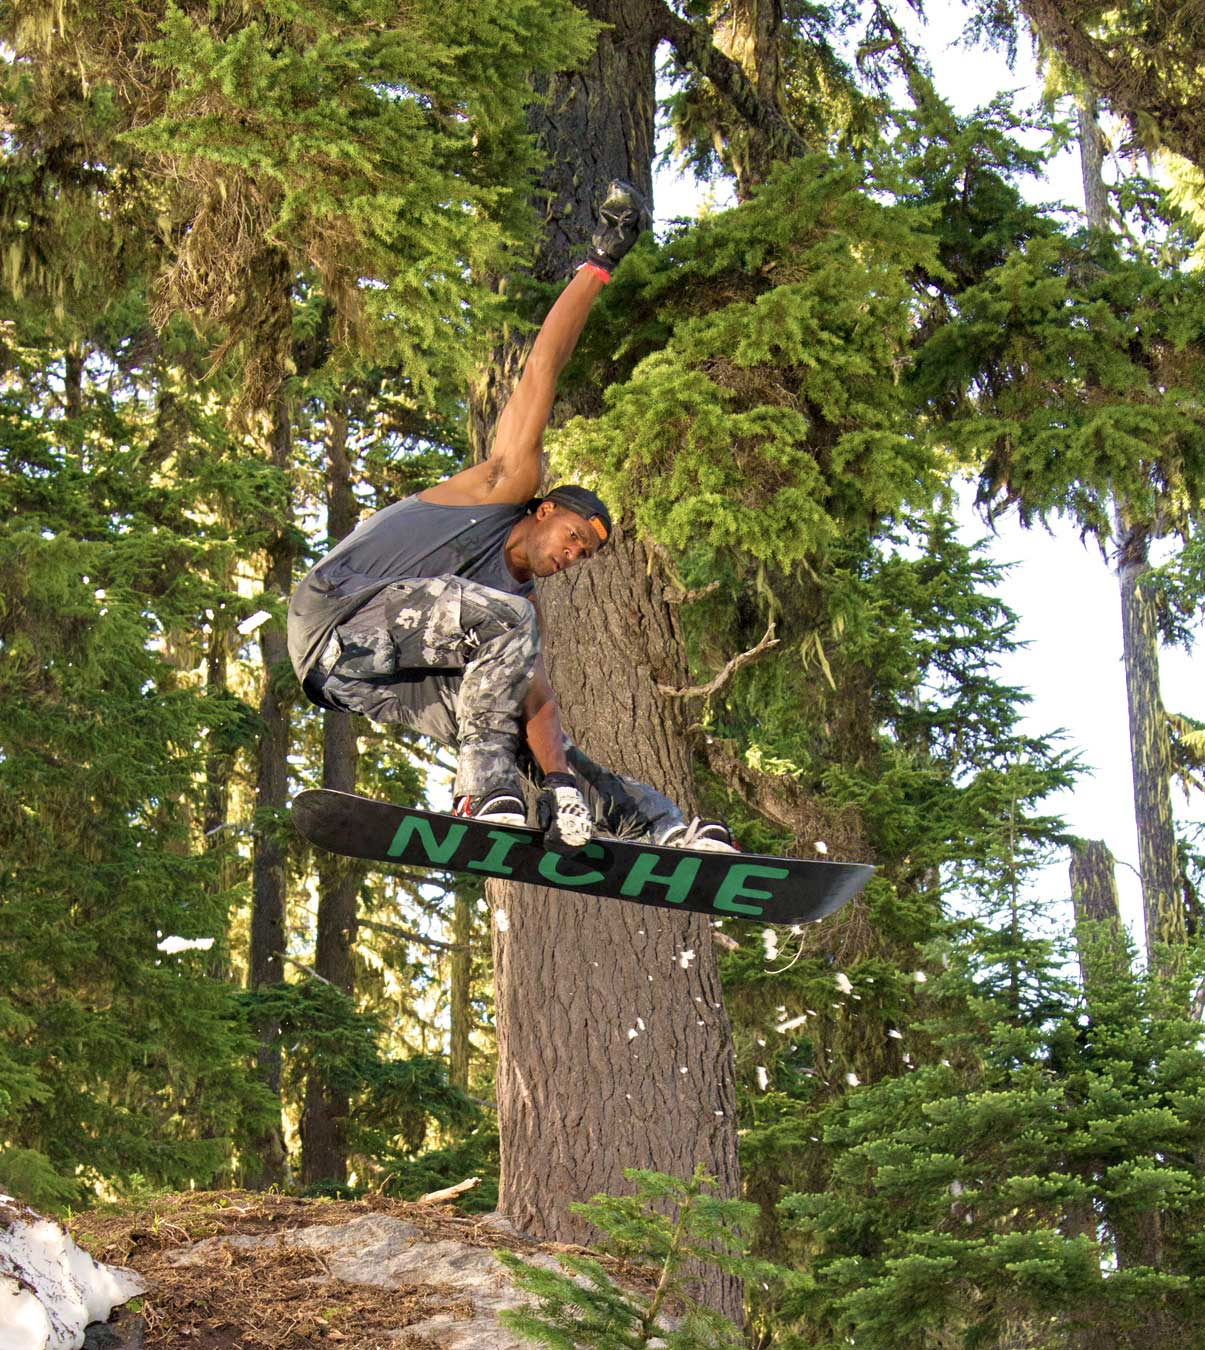 Snowboarder catching air in forest